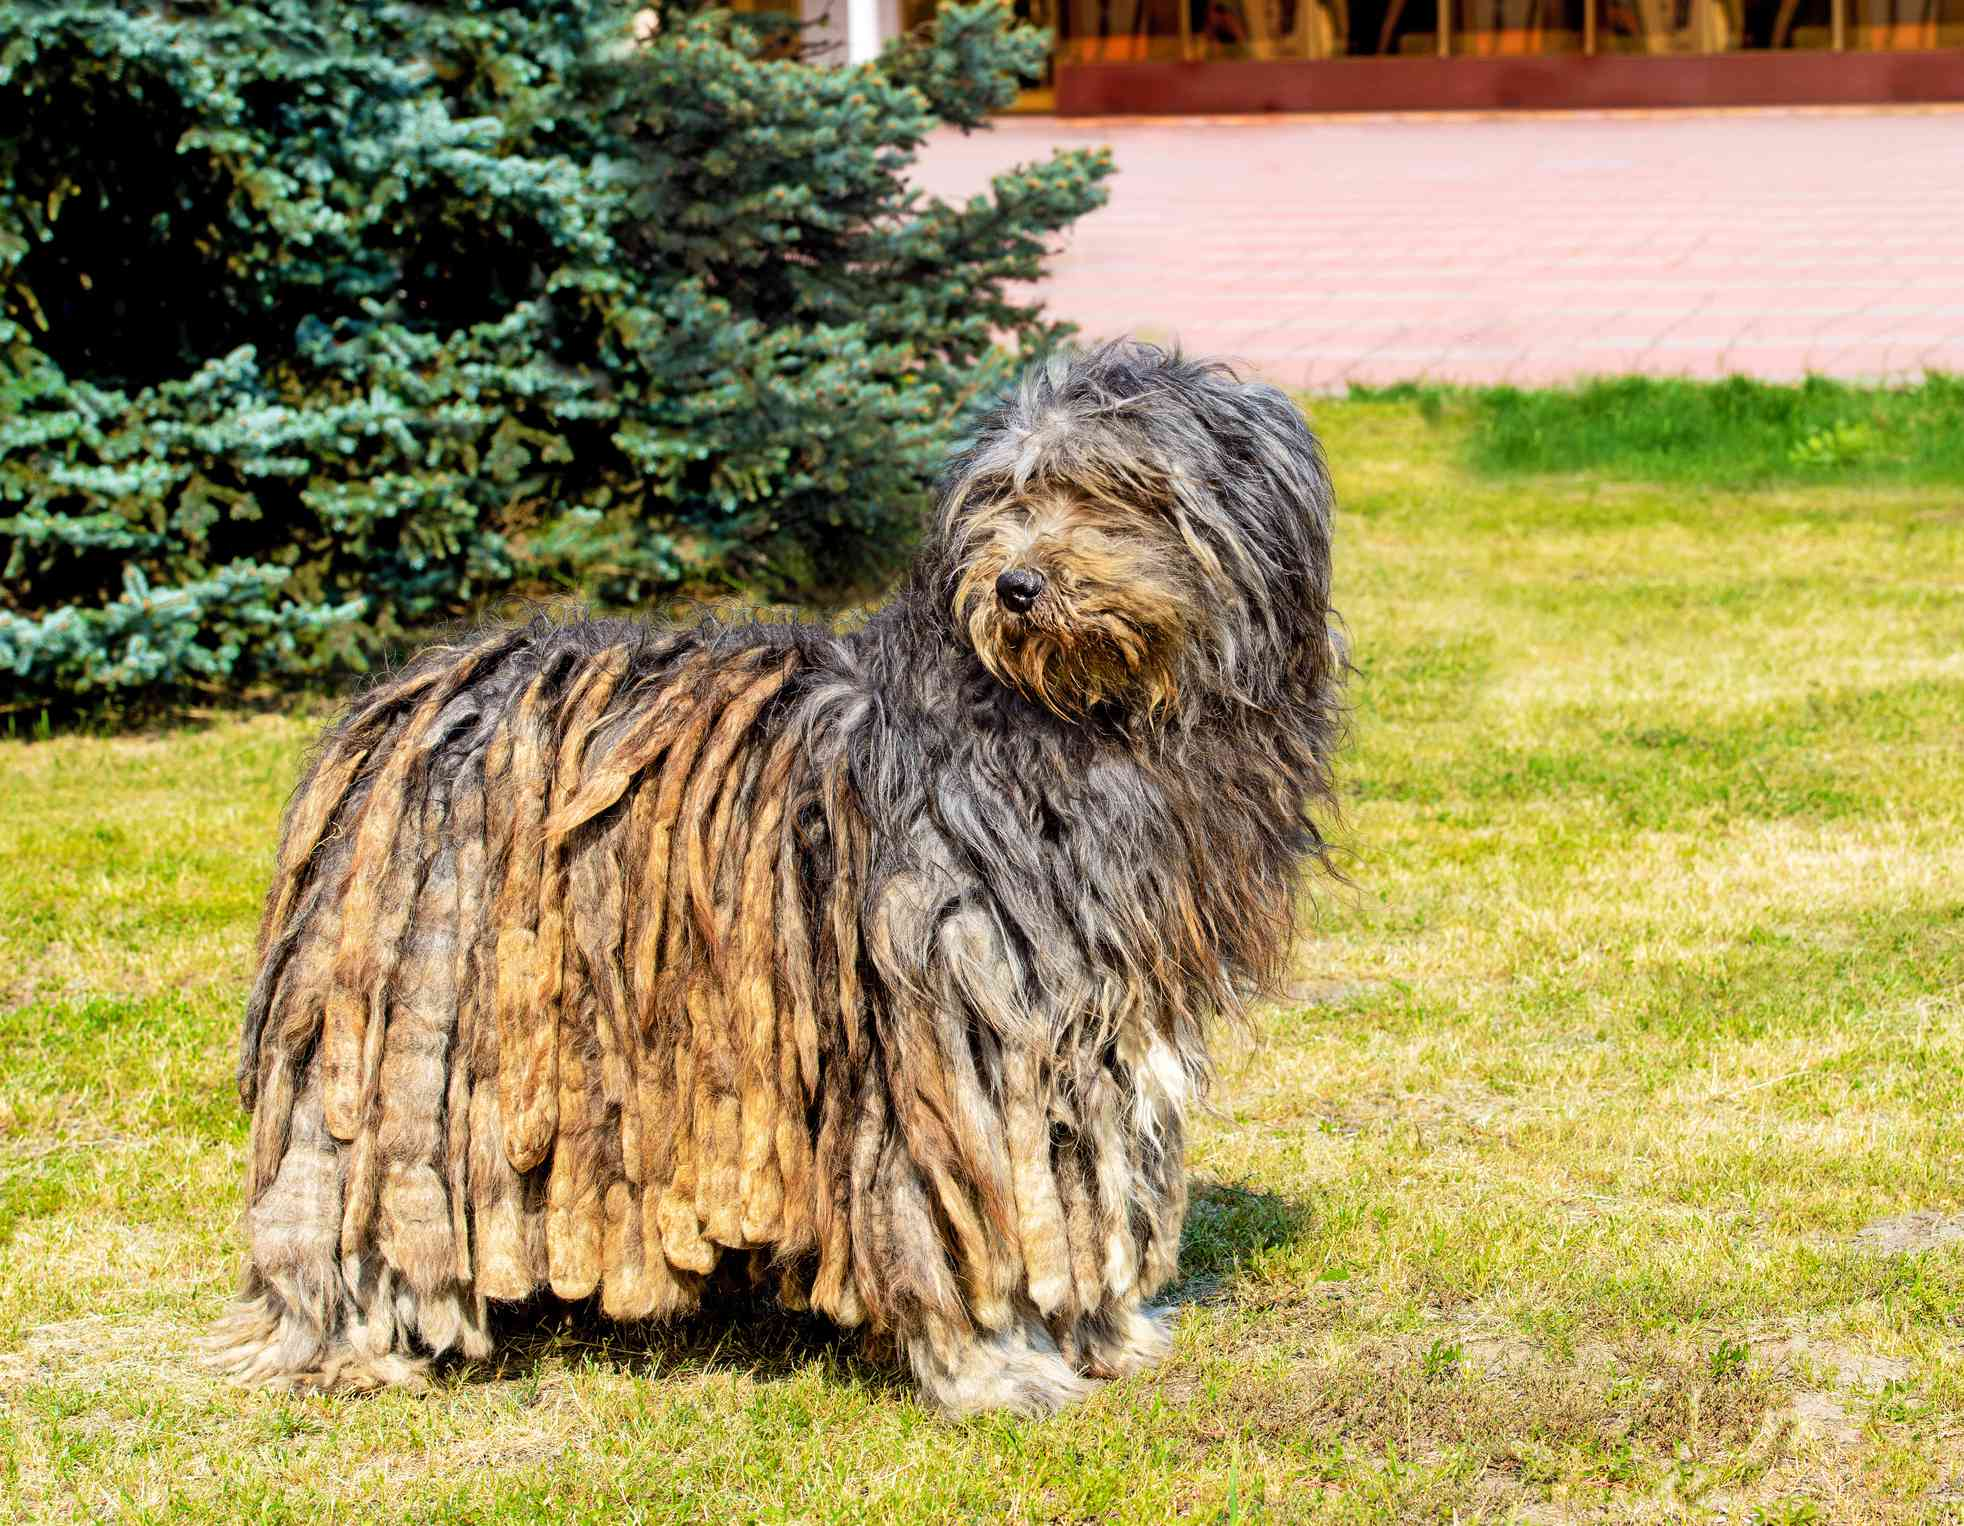 Bergamasco Sheepdog standing on a lawn